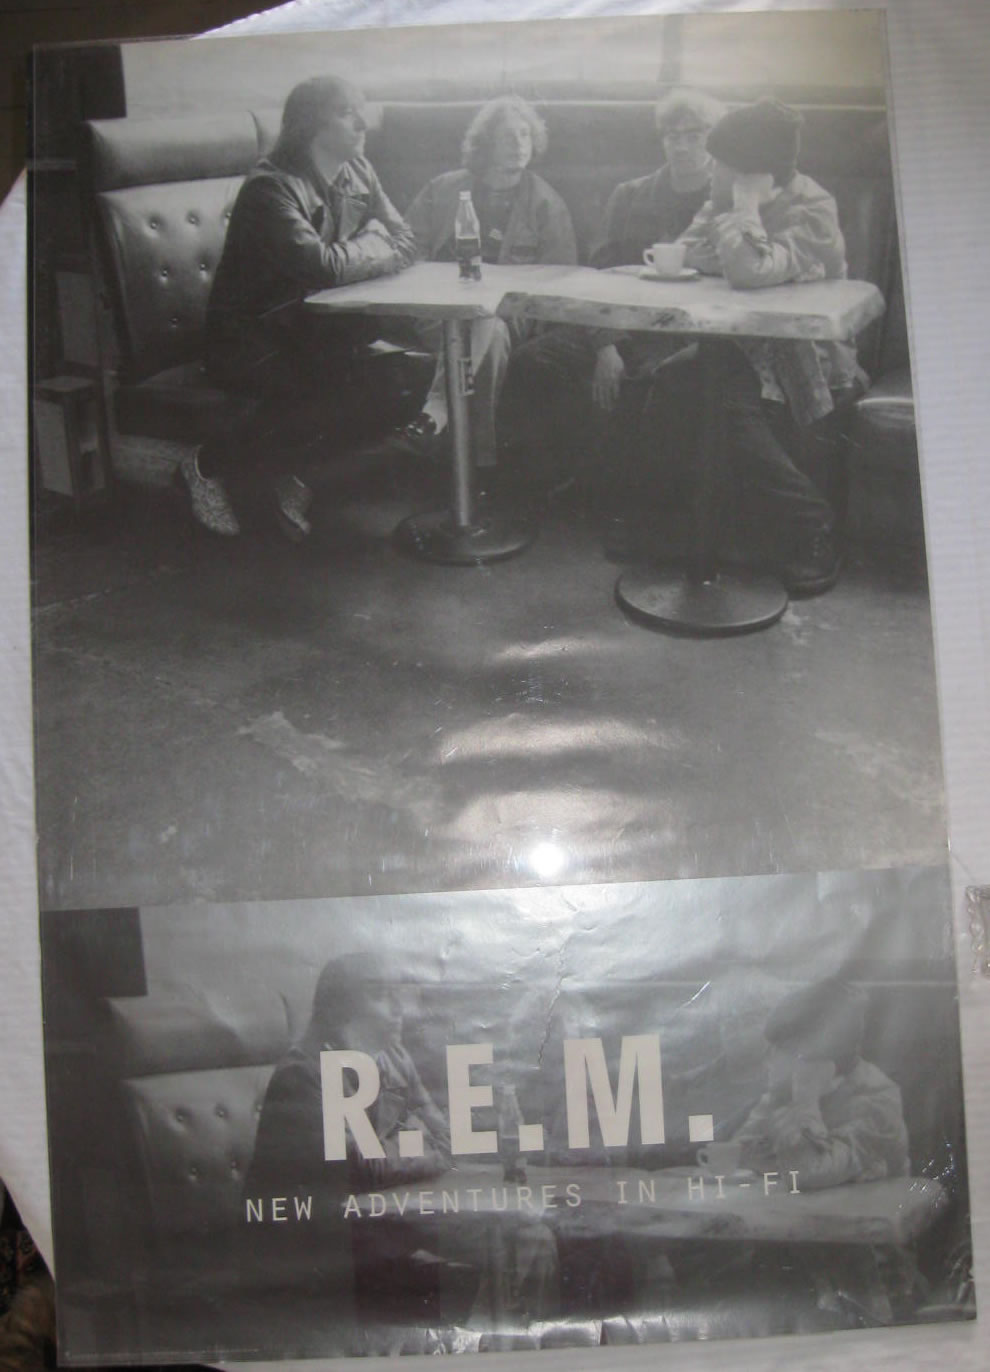 REM - New Adventures in Hi-Fi - 1996 record store promo poster